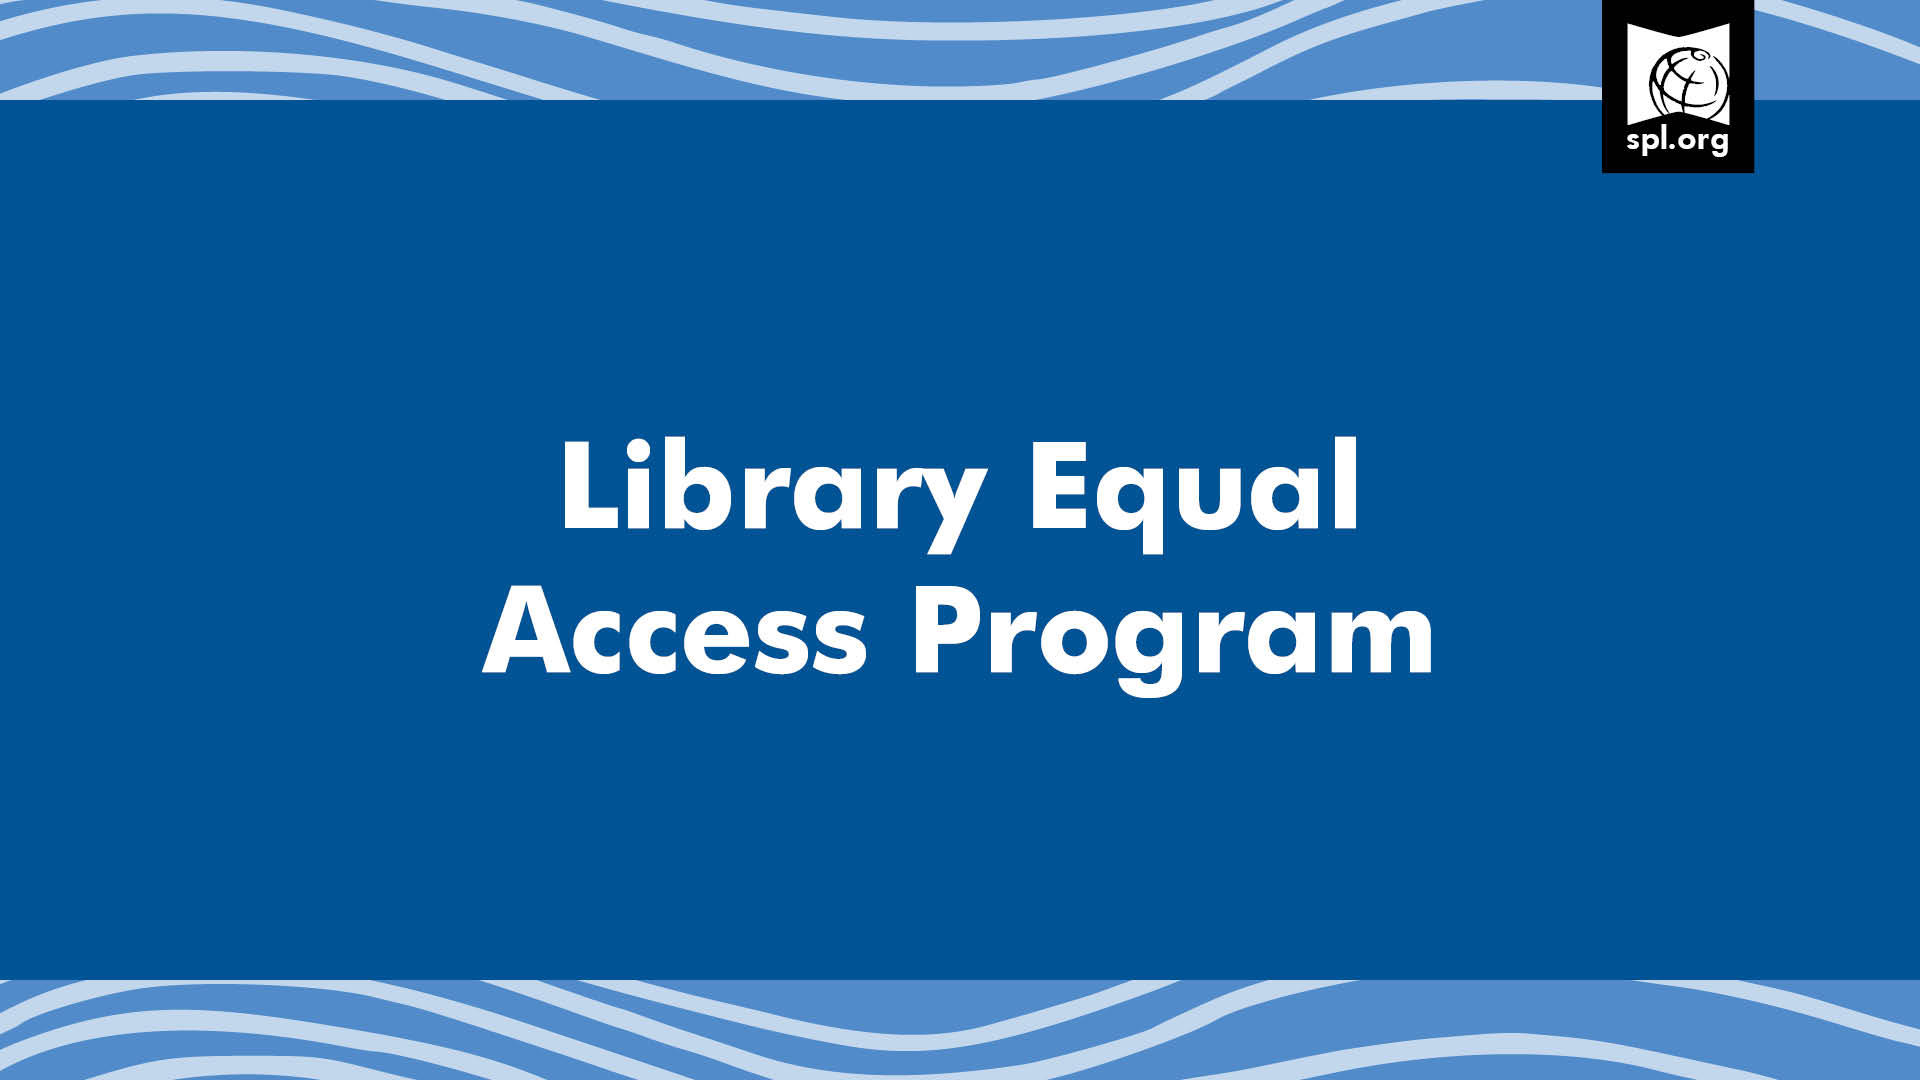 Library Equal Access Program graphic